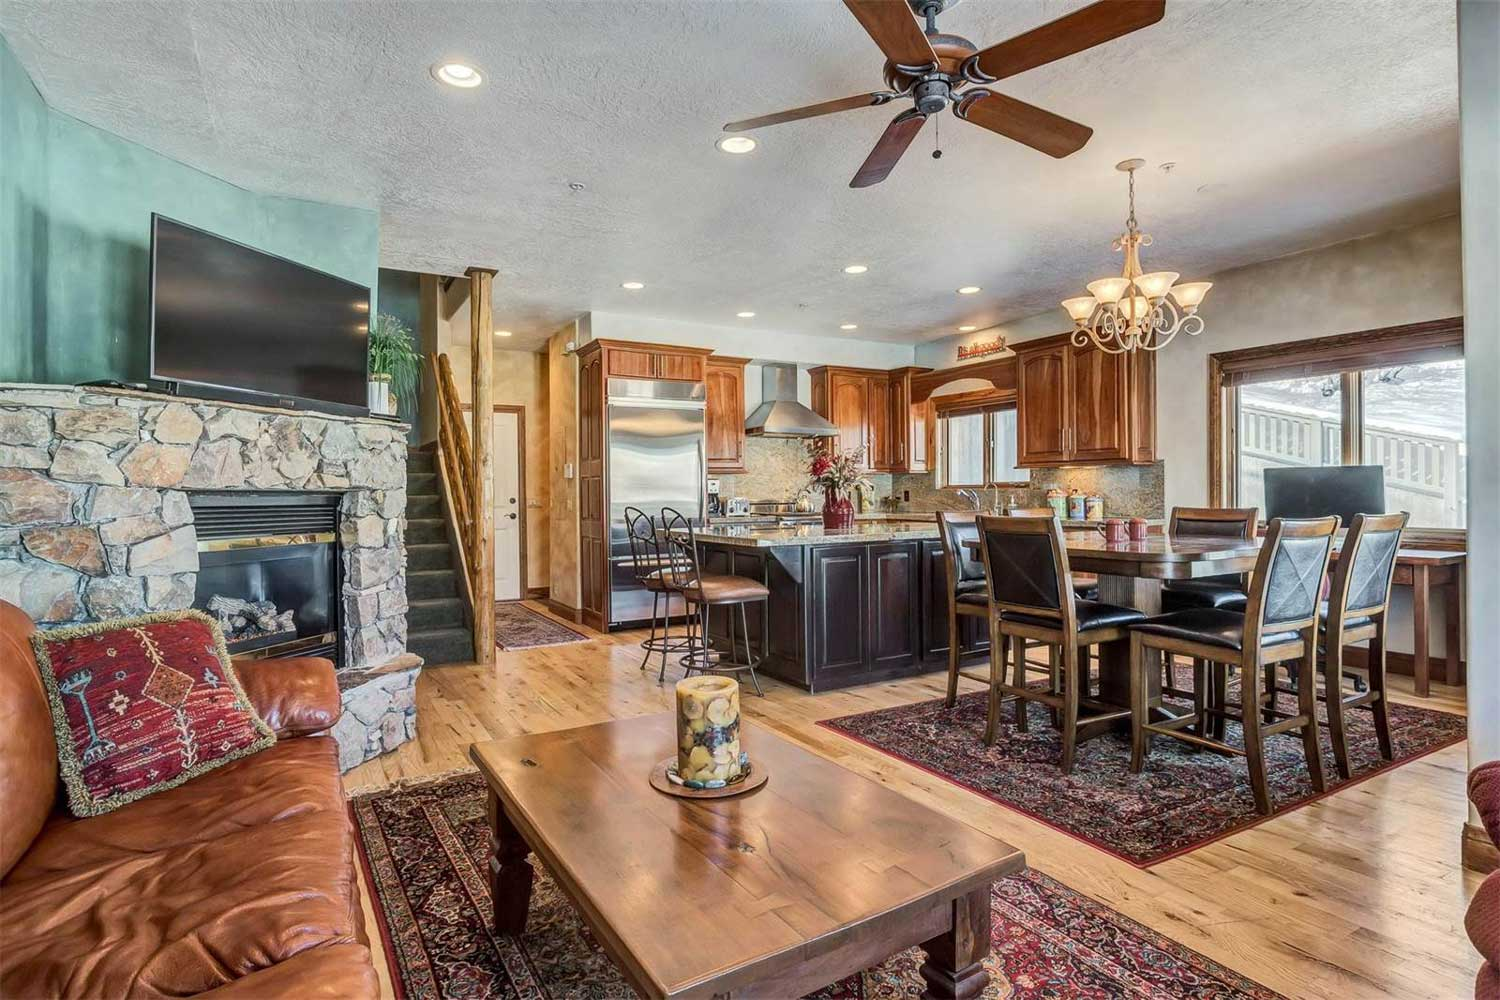 <b>Park City, Utah</b><br/><i>3 Bedrooms, 1,720sq. ft.</i><br/>Silver Pointe Townhouse